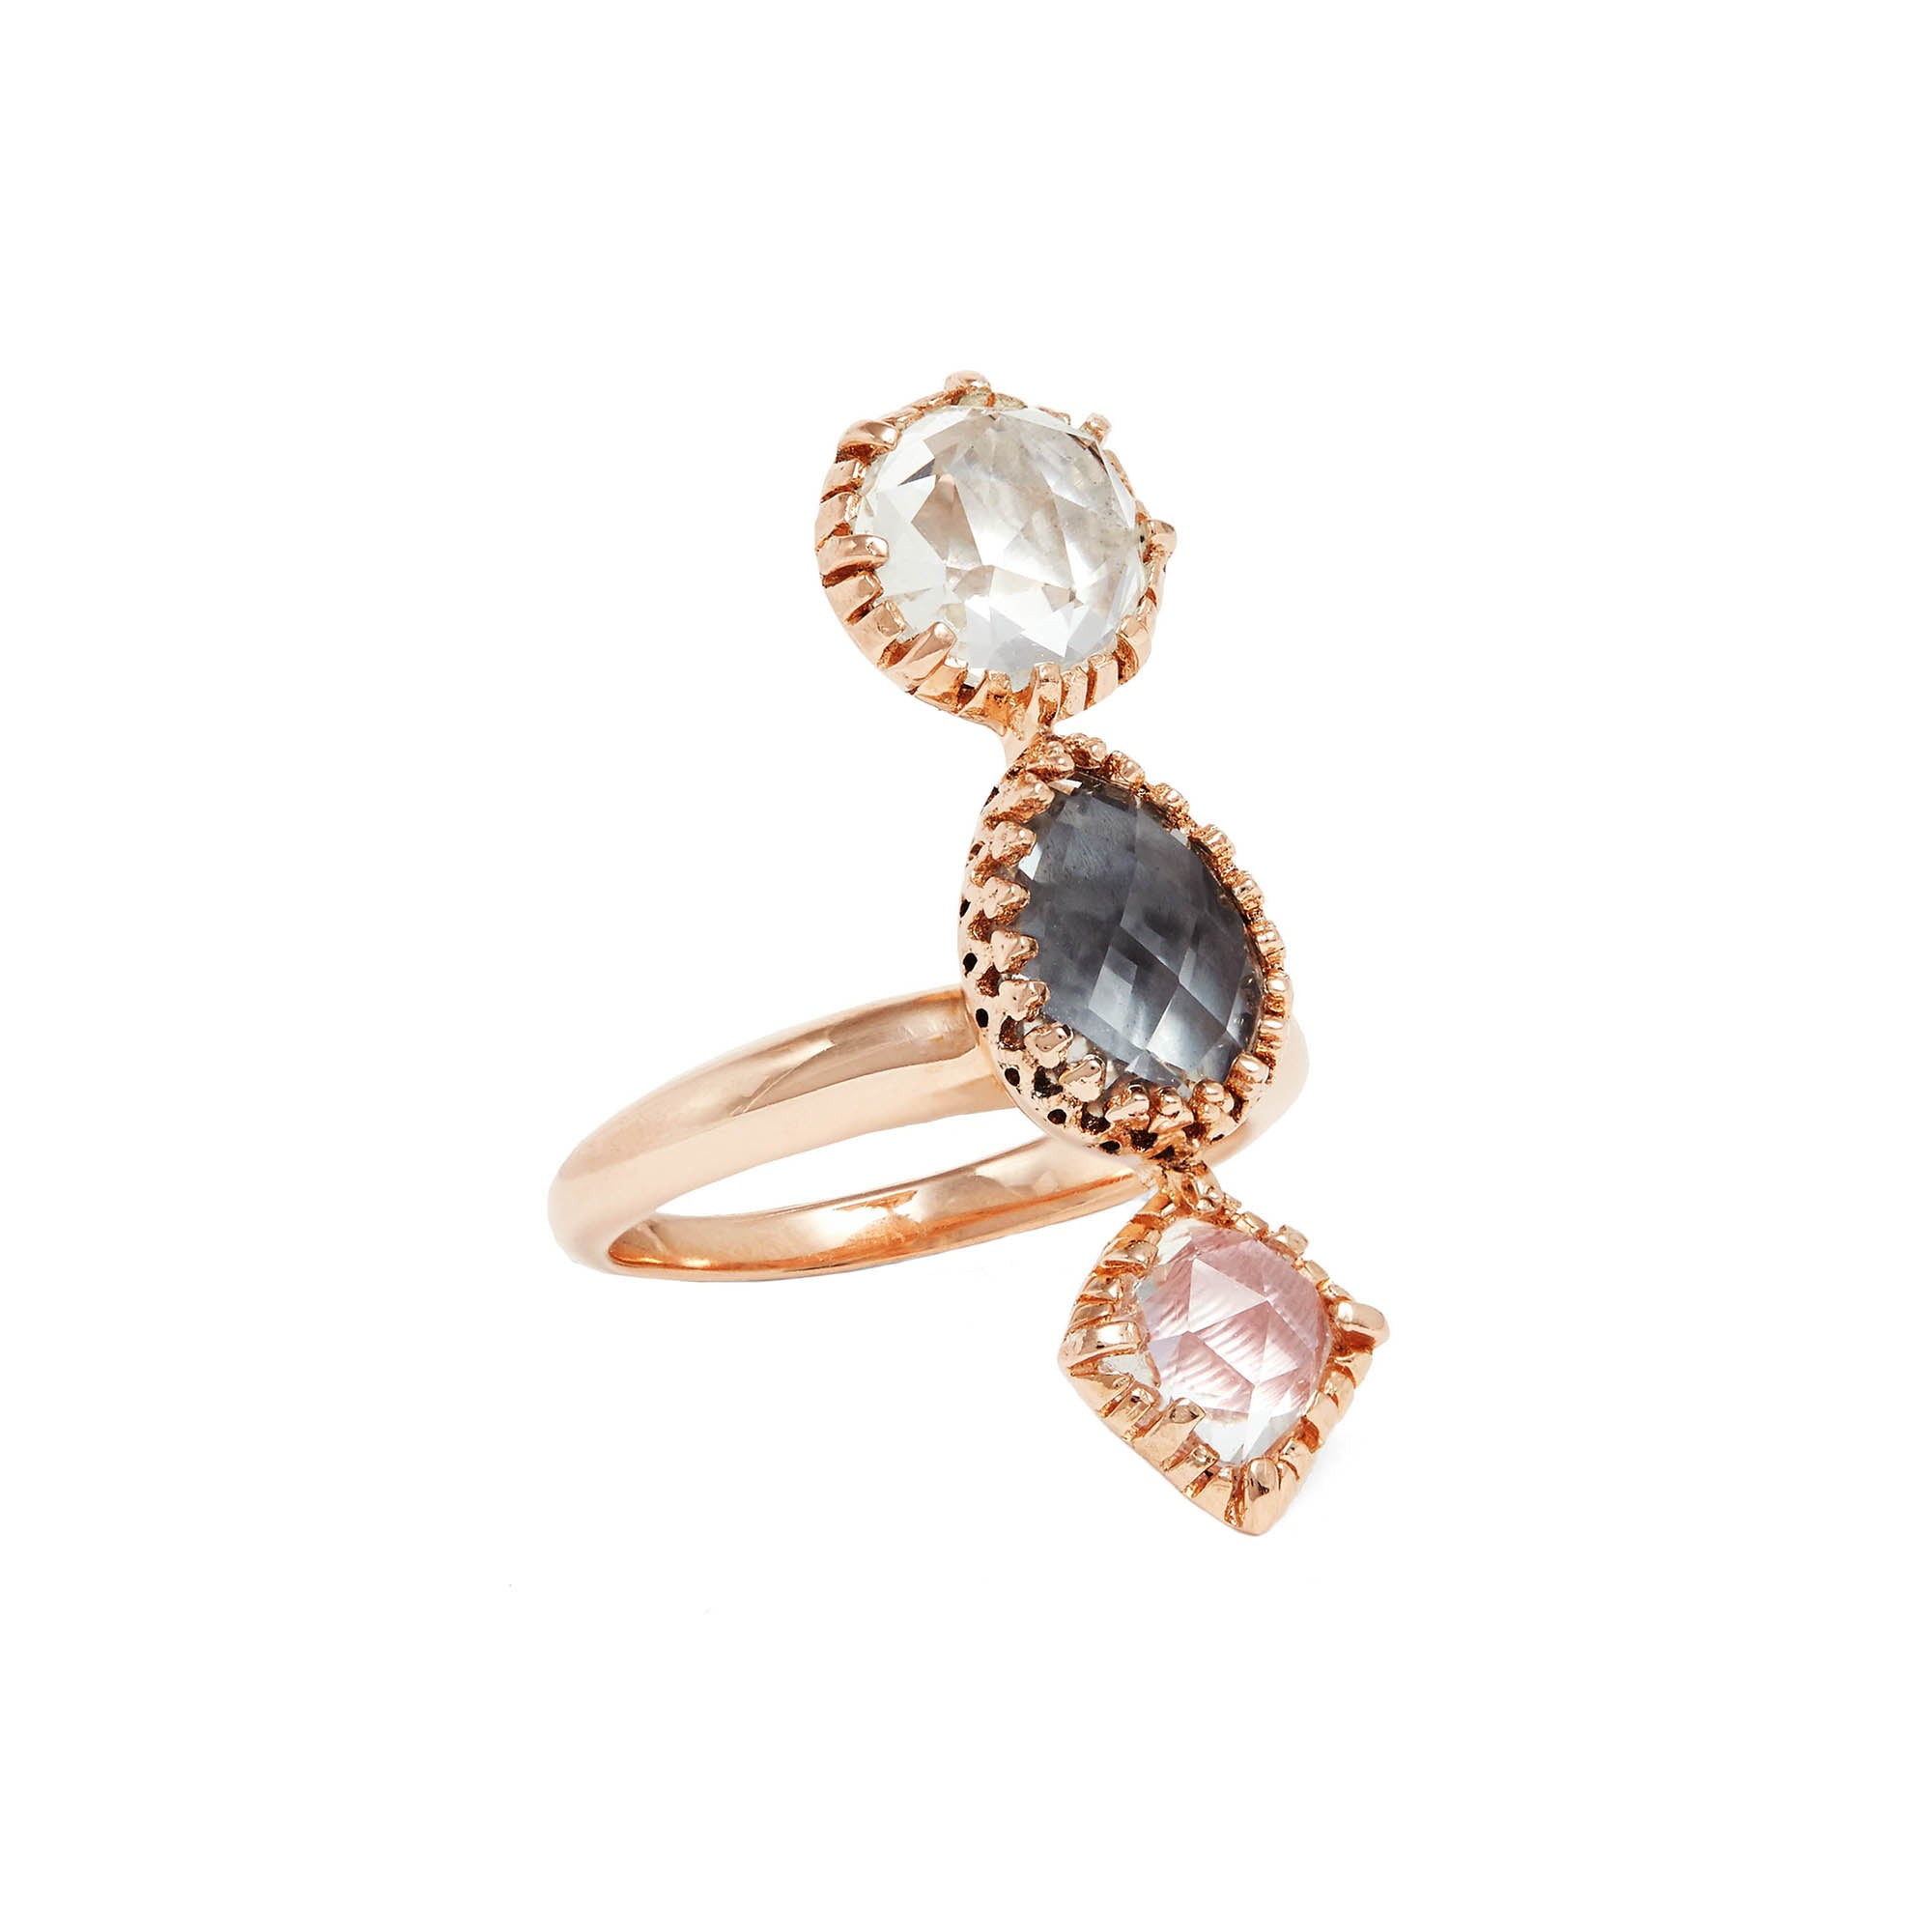 Sadie 3-Stone Ring by Larkspur & Hawk for Broken English Jewelry